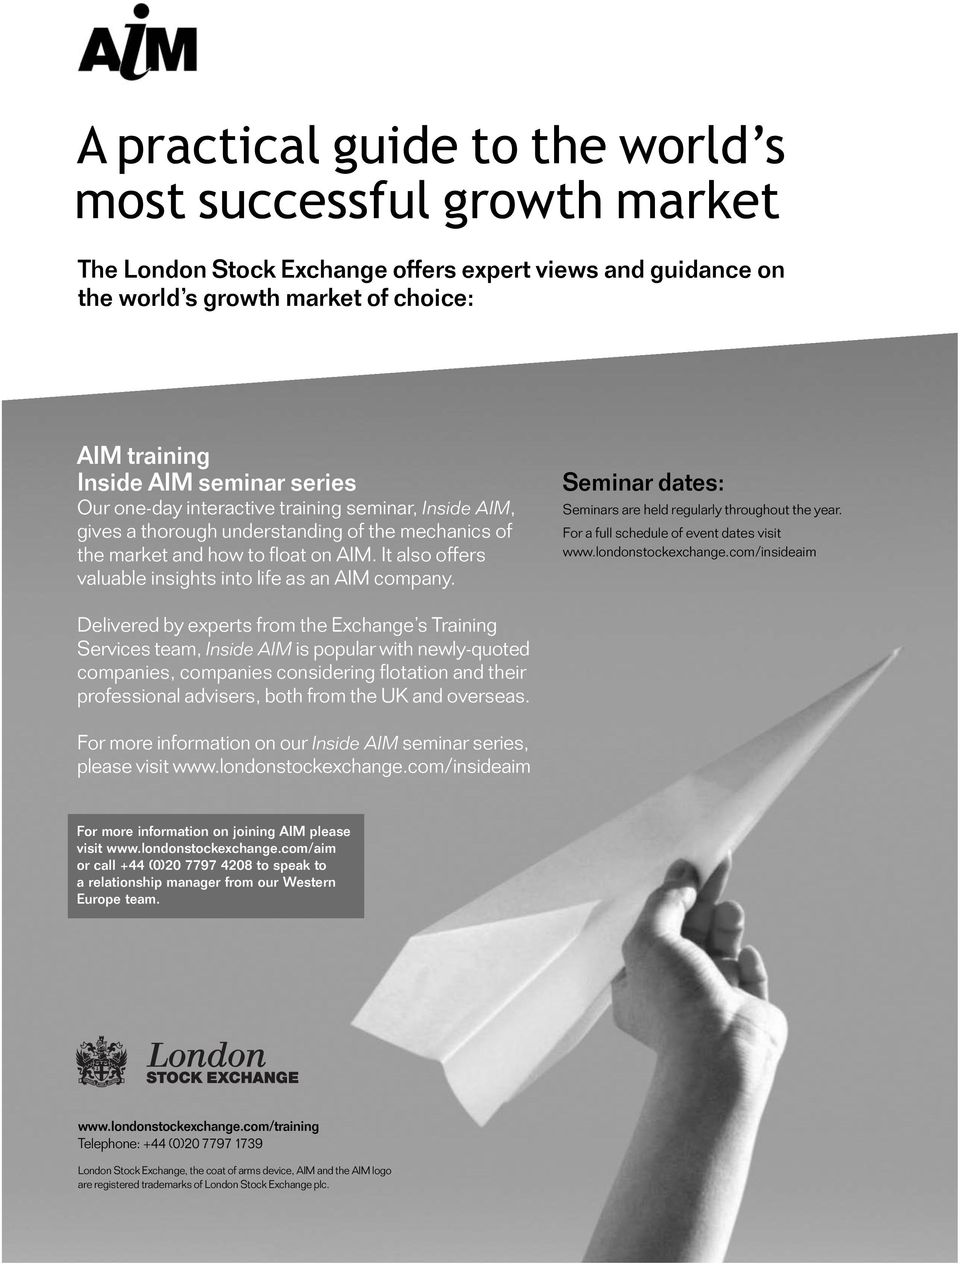 It also offers valuable insights into life as an AIM company. Seminar dates: Seminars are held regularly throughout the year. For a full schedule of event dates visit www.londonstockexchange.